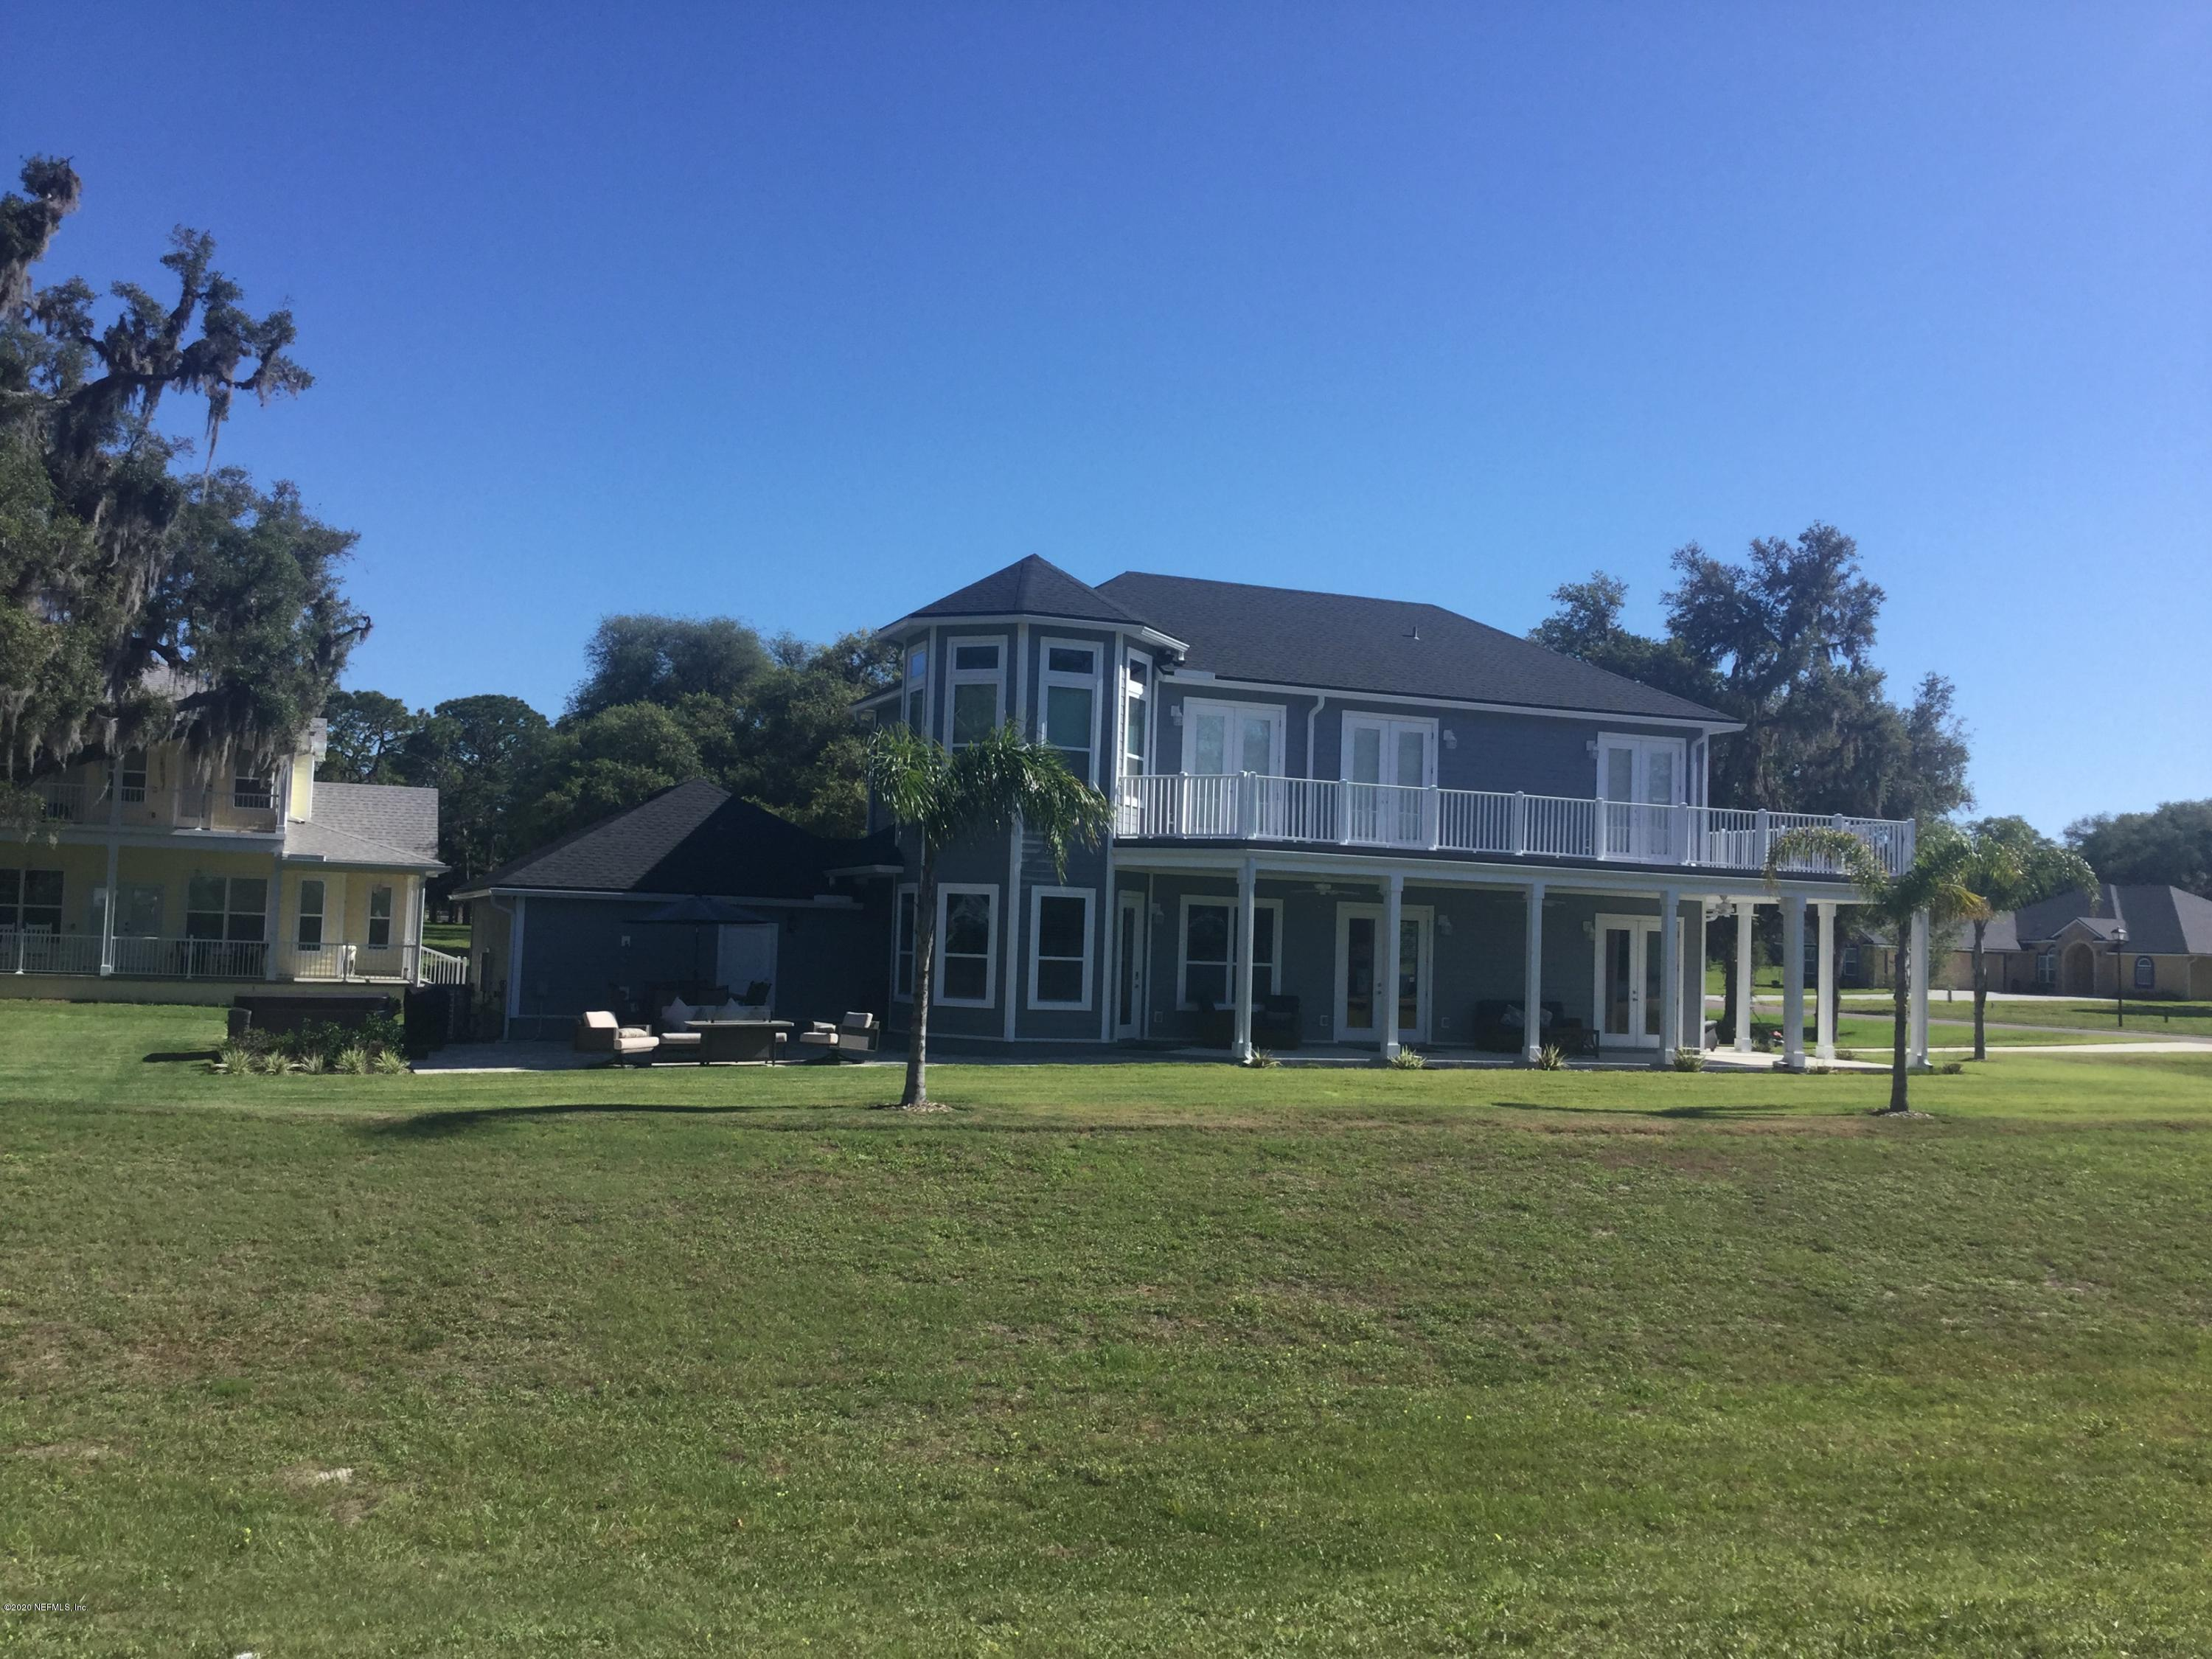 4090 BUENA VISTA, STARKE, FLORIDA 32091, 4 Bedrooms Bedrooms, ,3 BathroomsBathrooms,Residential,For sale,BUENA VISTA,1052692